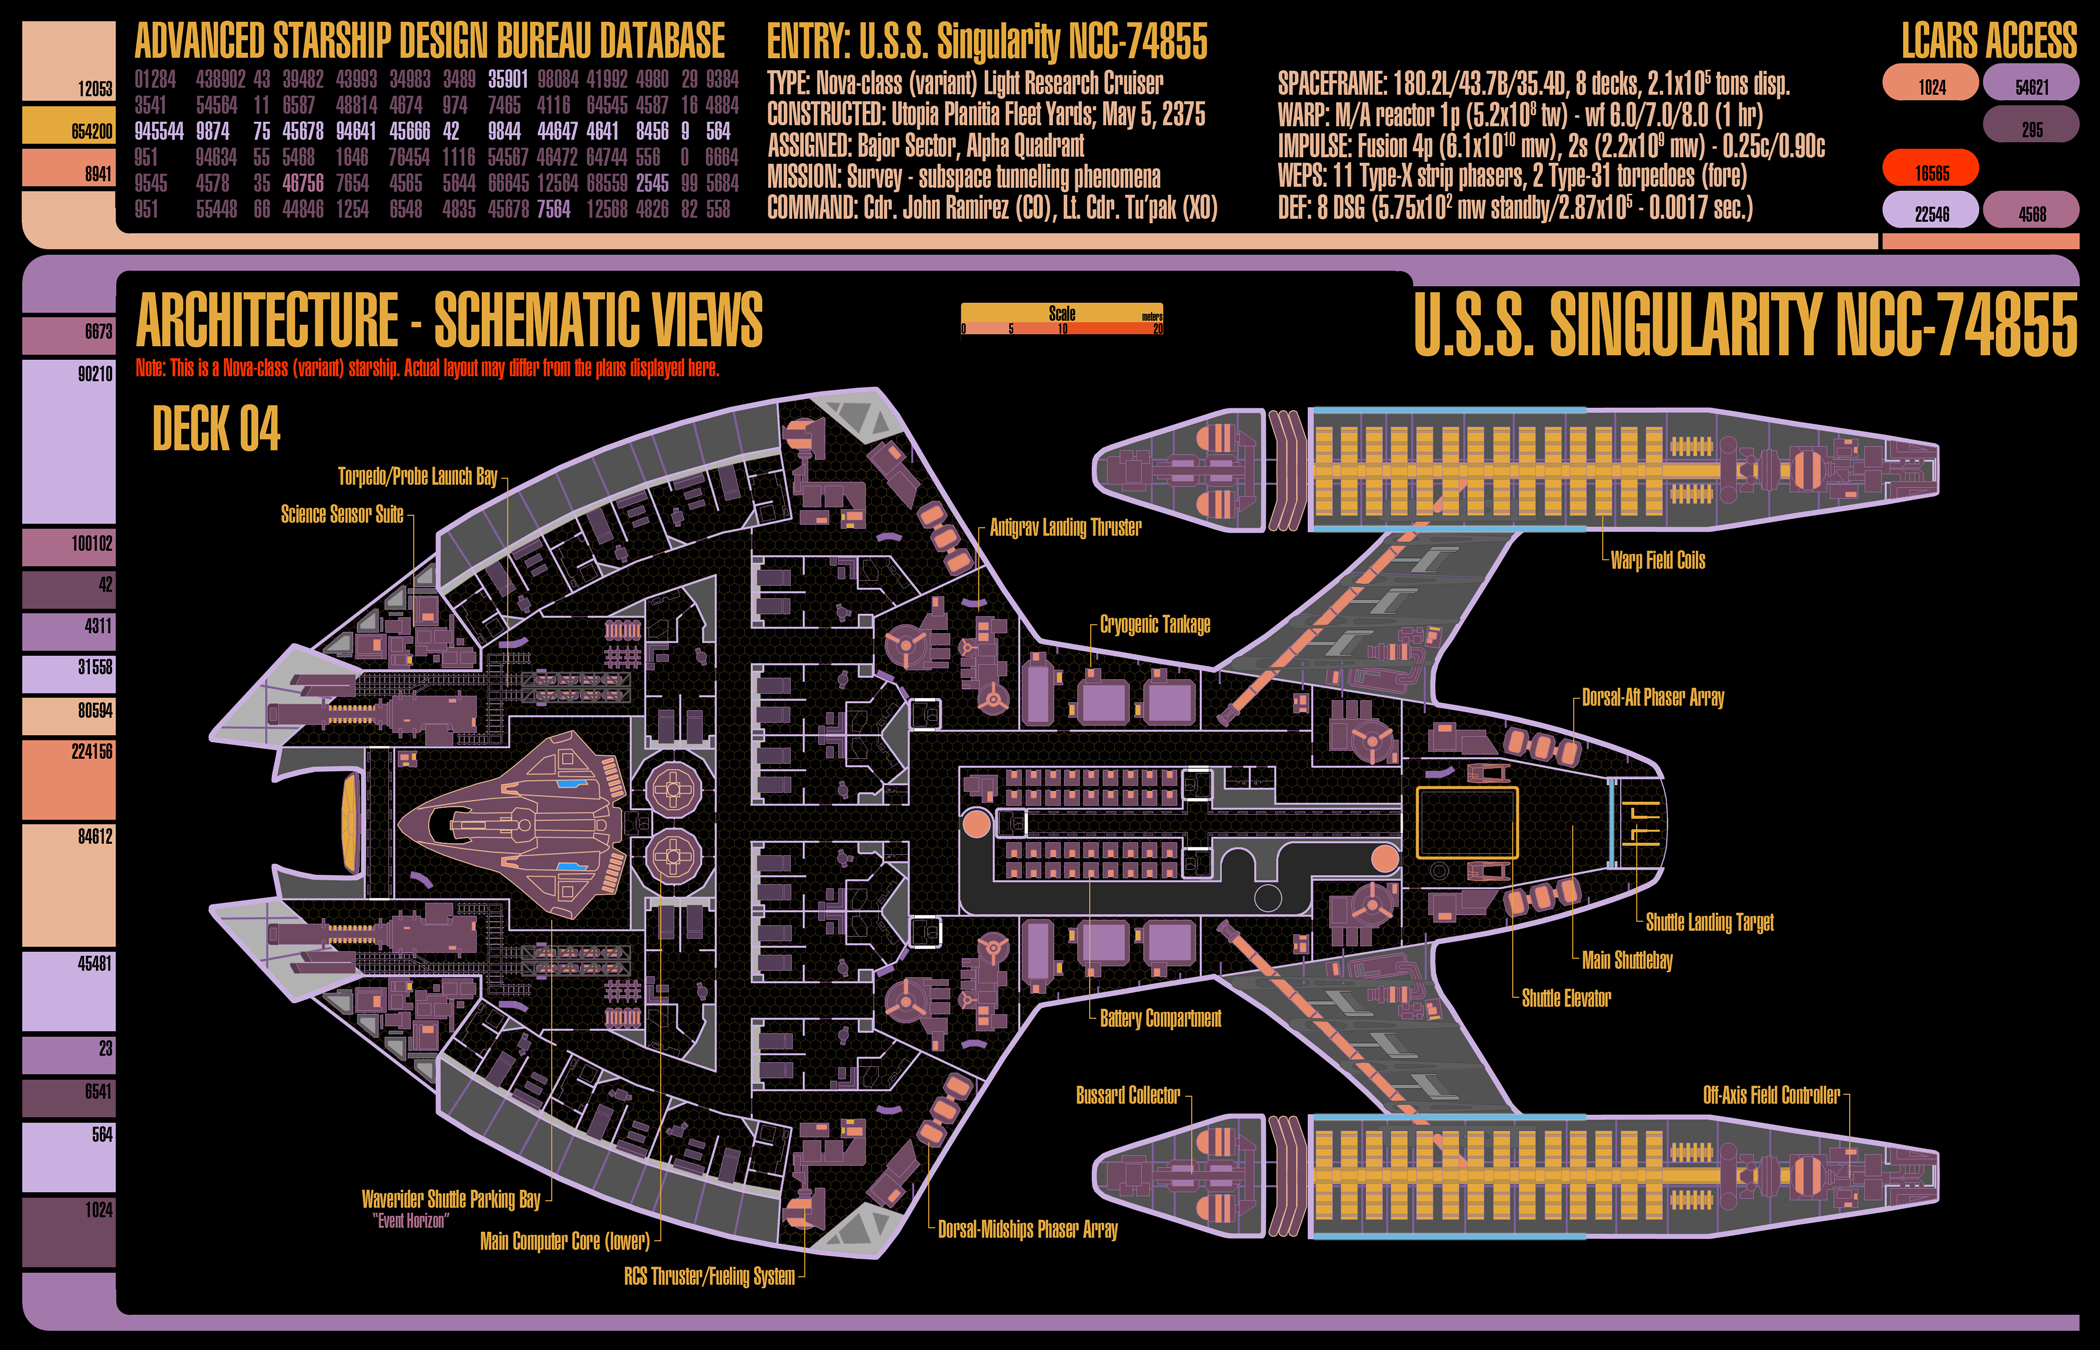 U.S.S. Singularity (NCC-74855) - deckplans for an upcoming Star Trek (TNG-era) game I'll be running using GURPS. This is deck 4.